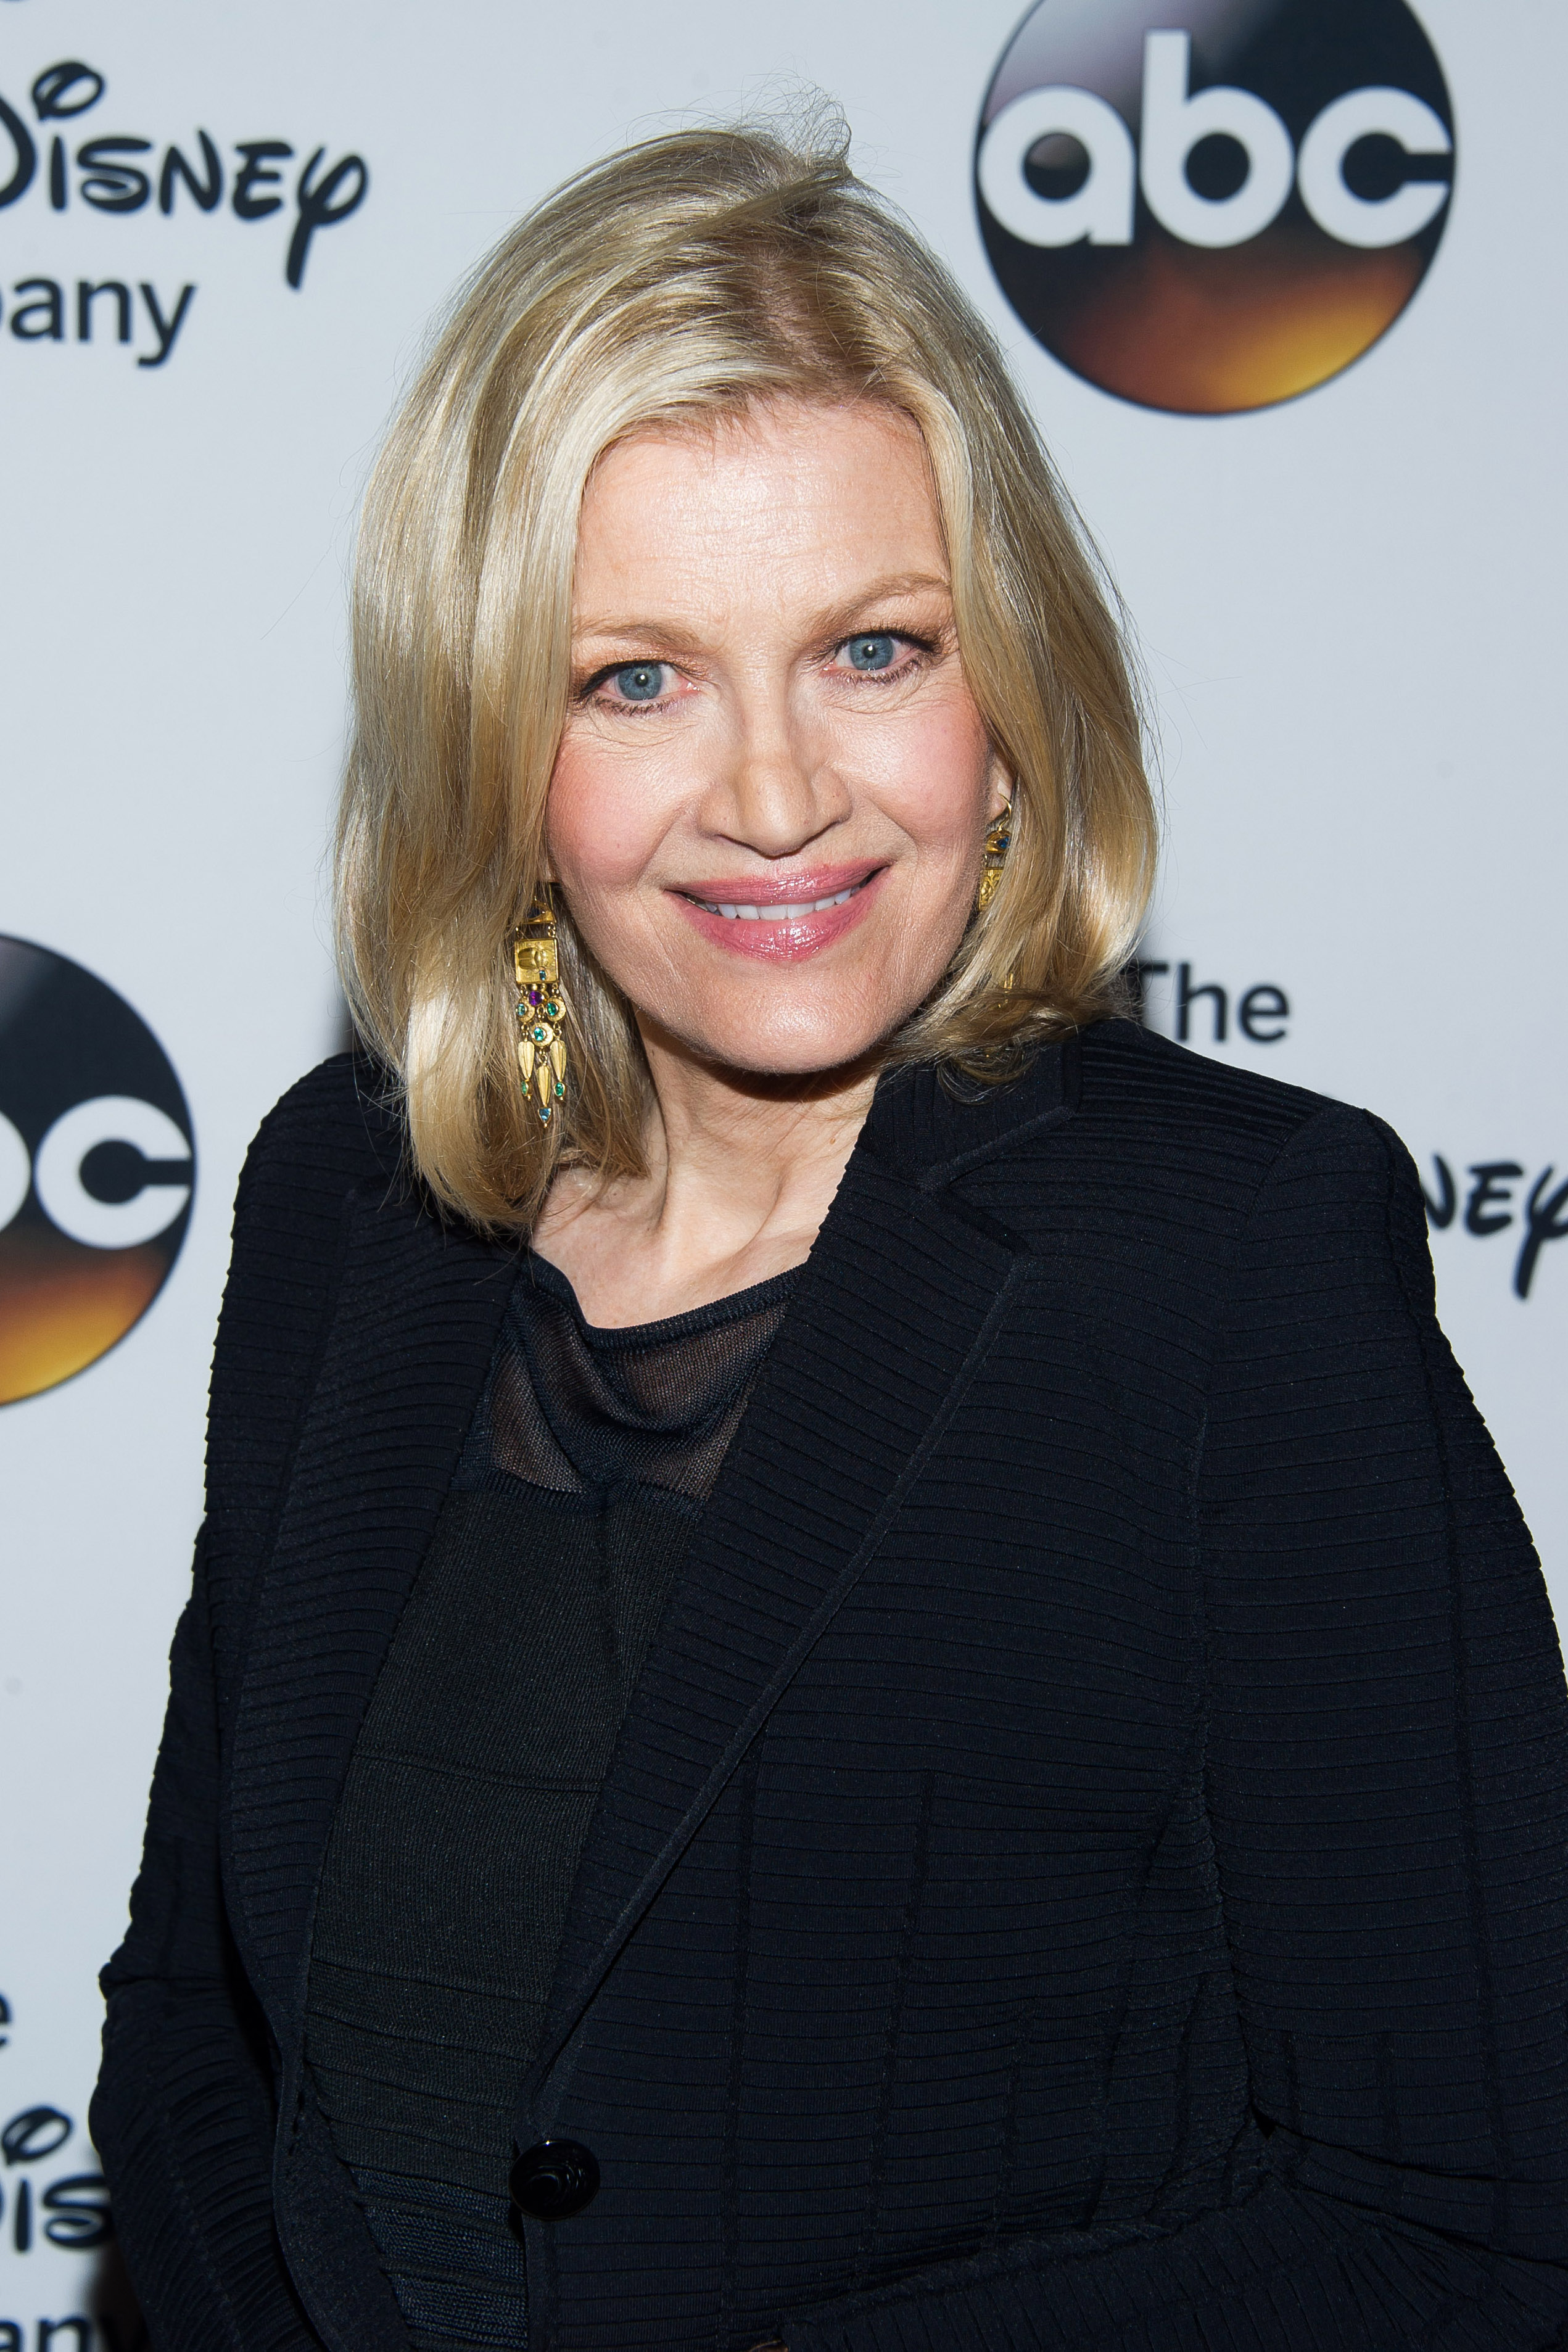 Diane Sawyer attends 'A Celebration of Barbara Walters' in New York City on May 14, 2014.